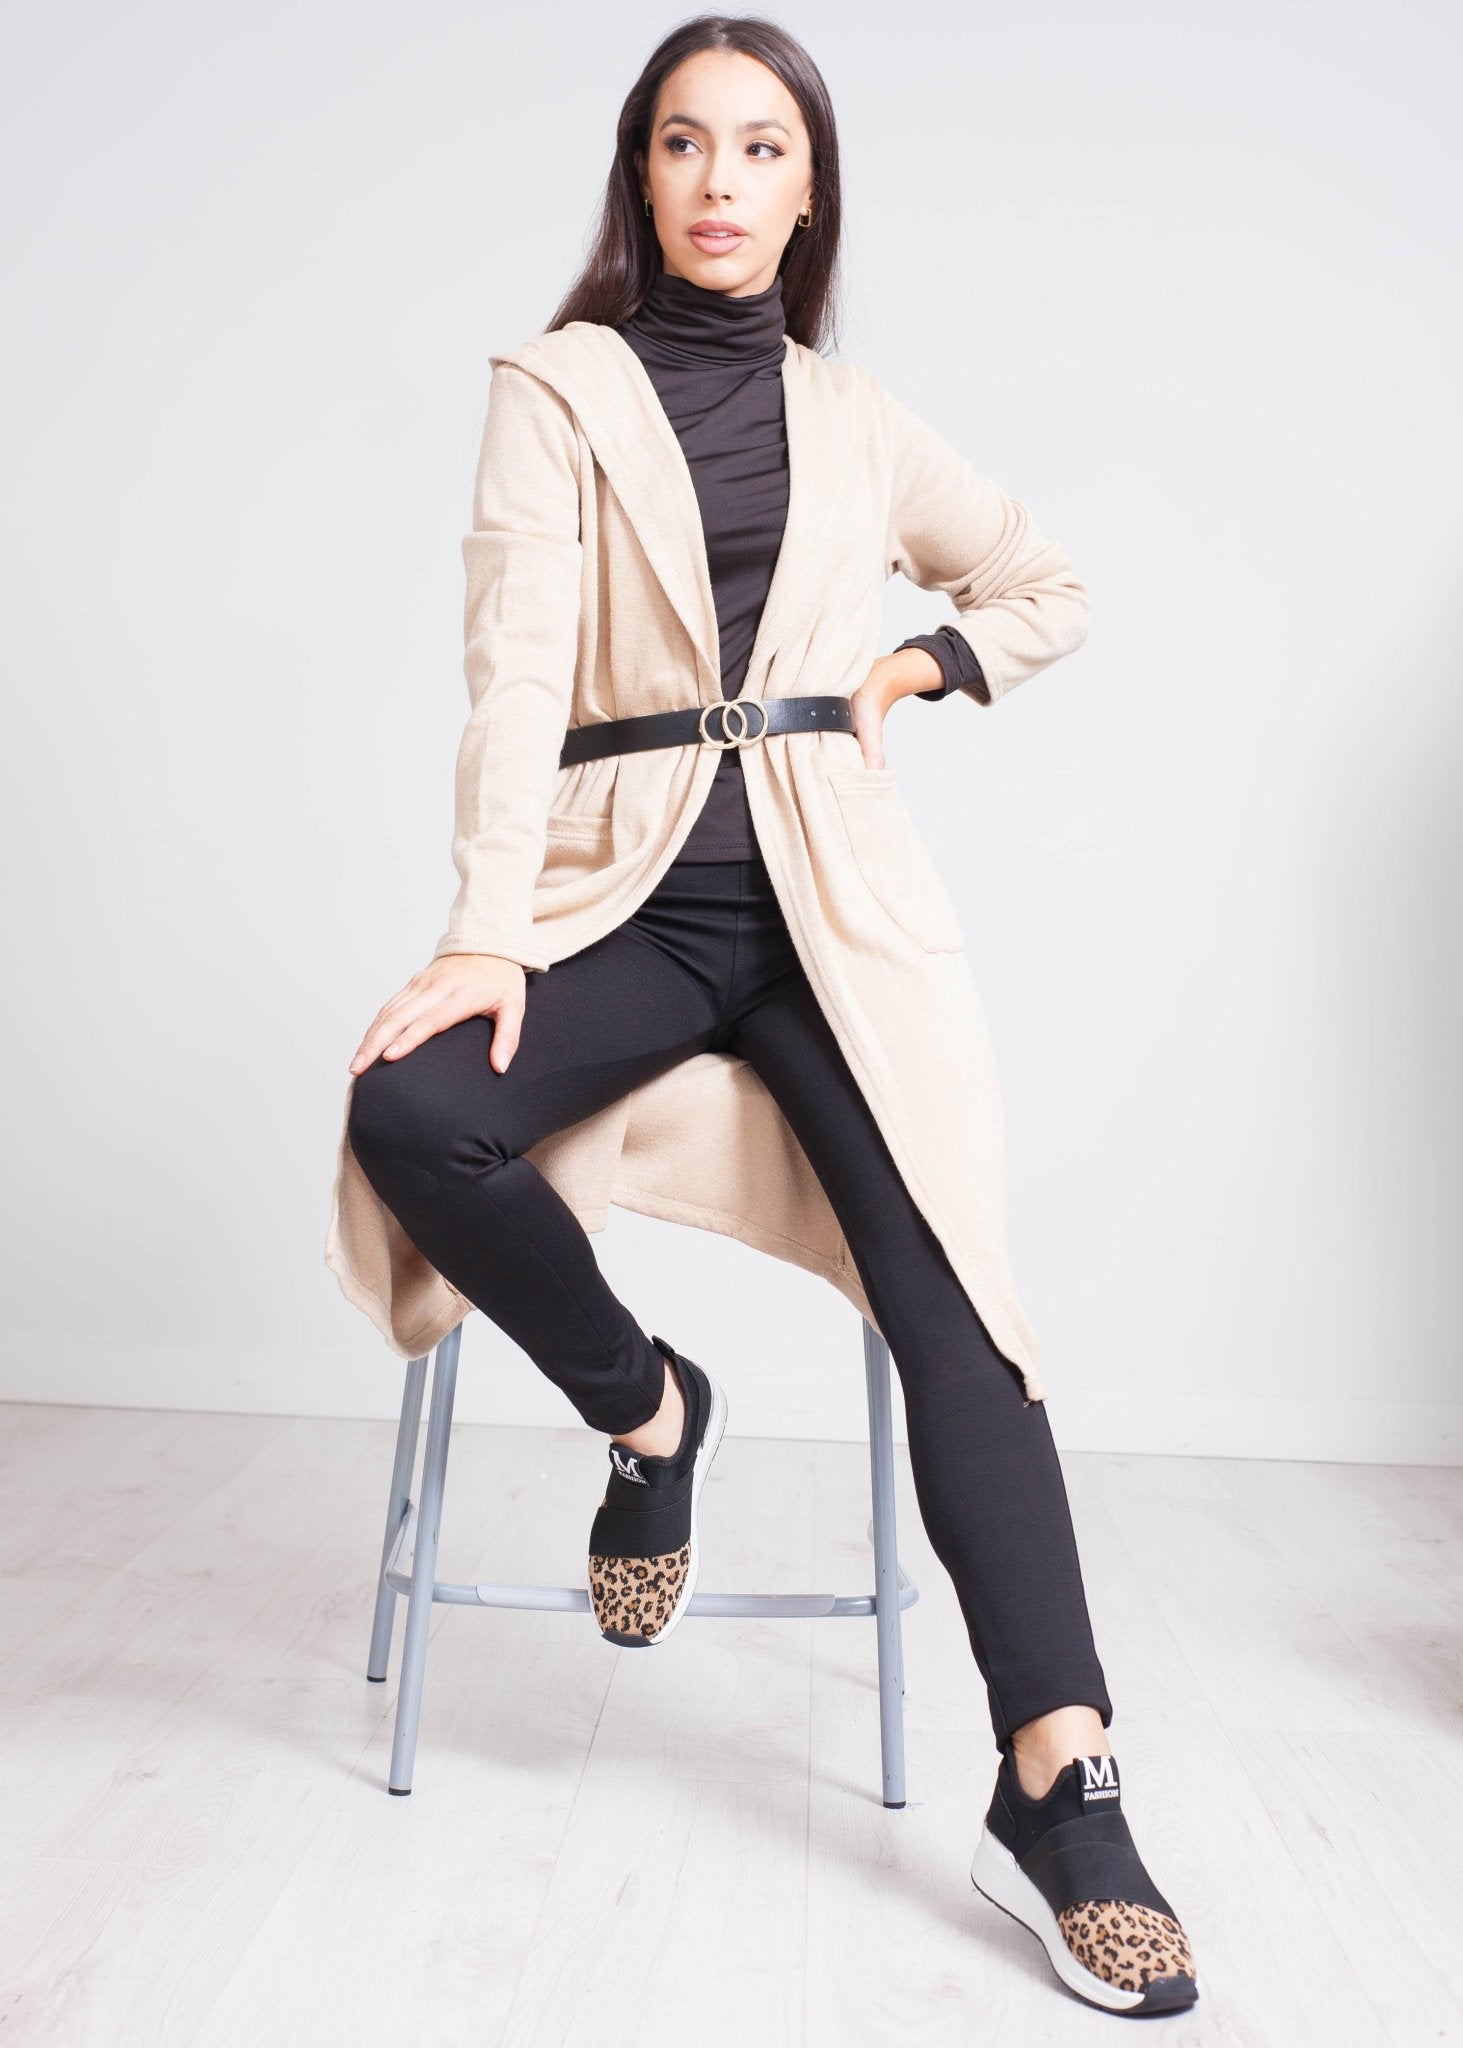 Priya Belted Cardigan In Caramel - The Walk in Wardrobe